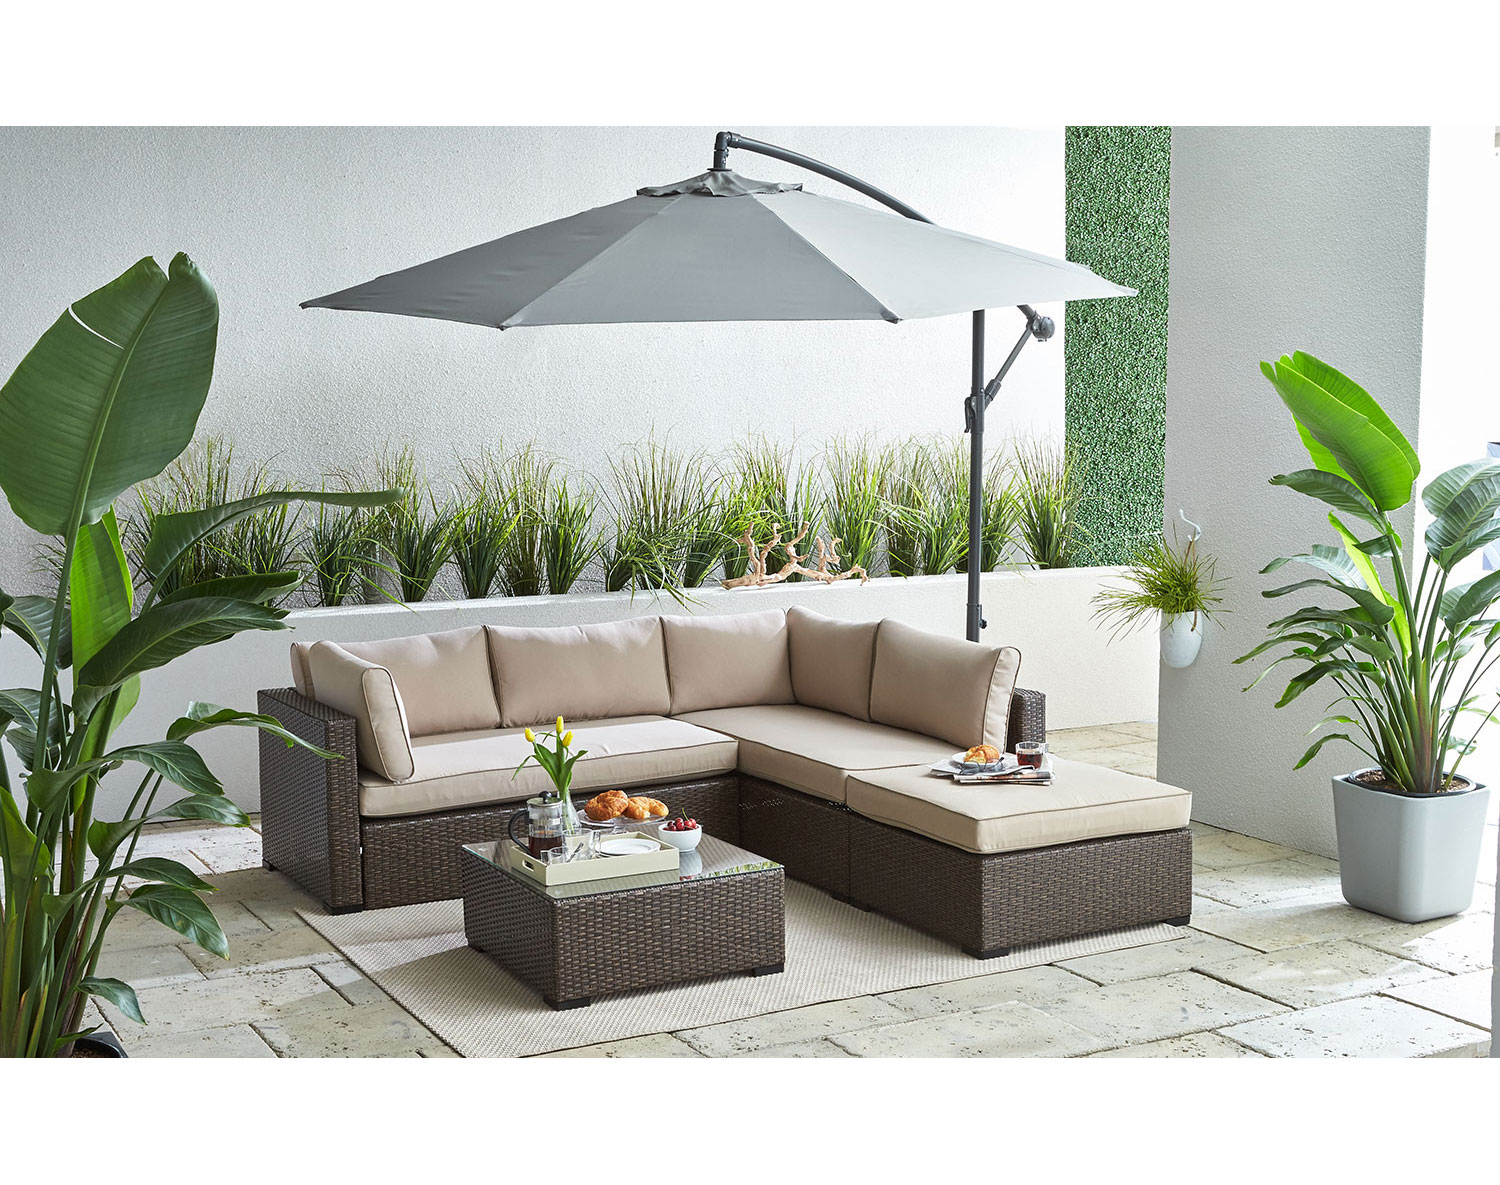 The Caribe Collection